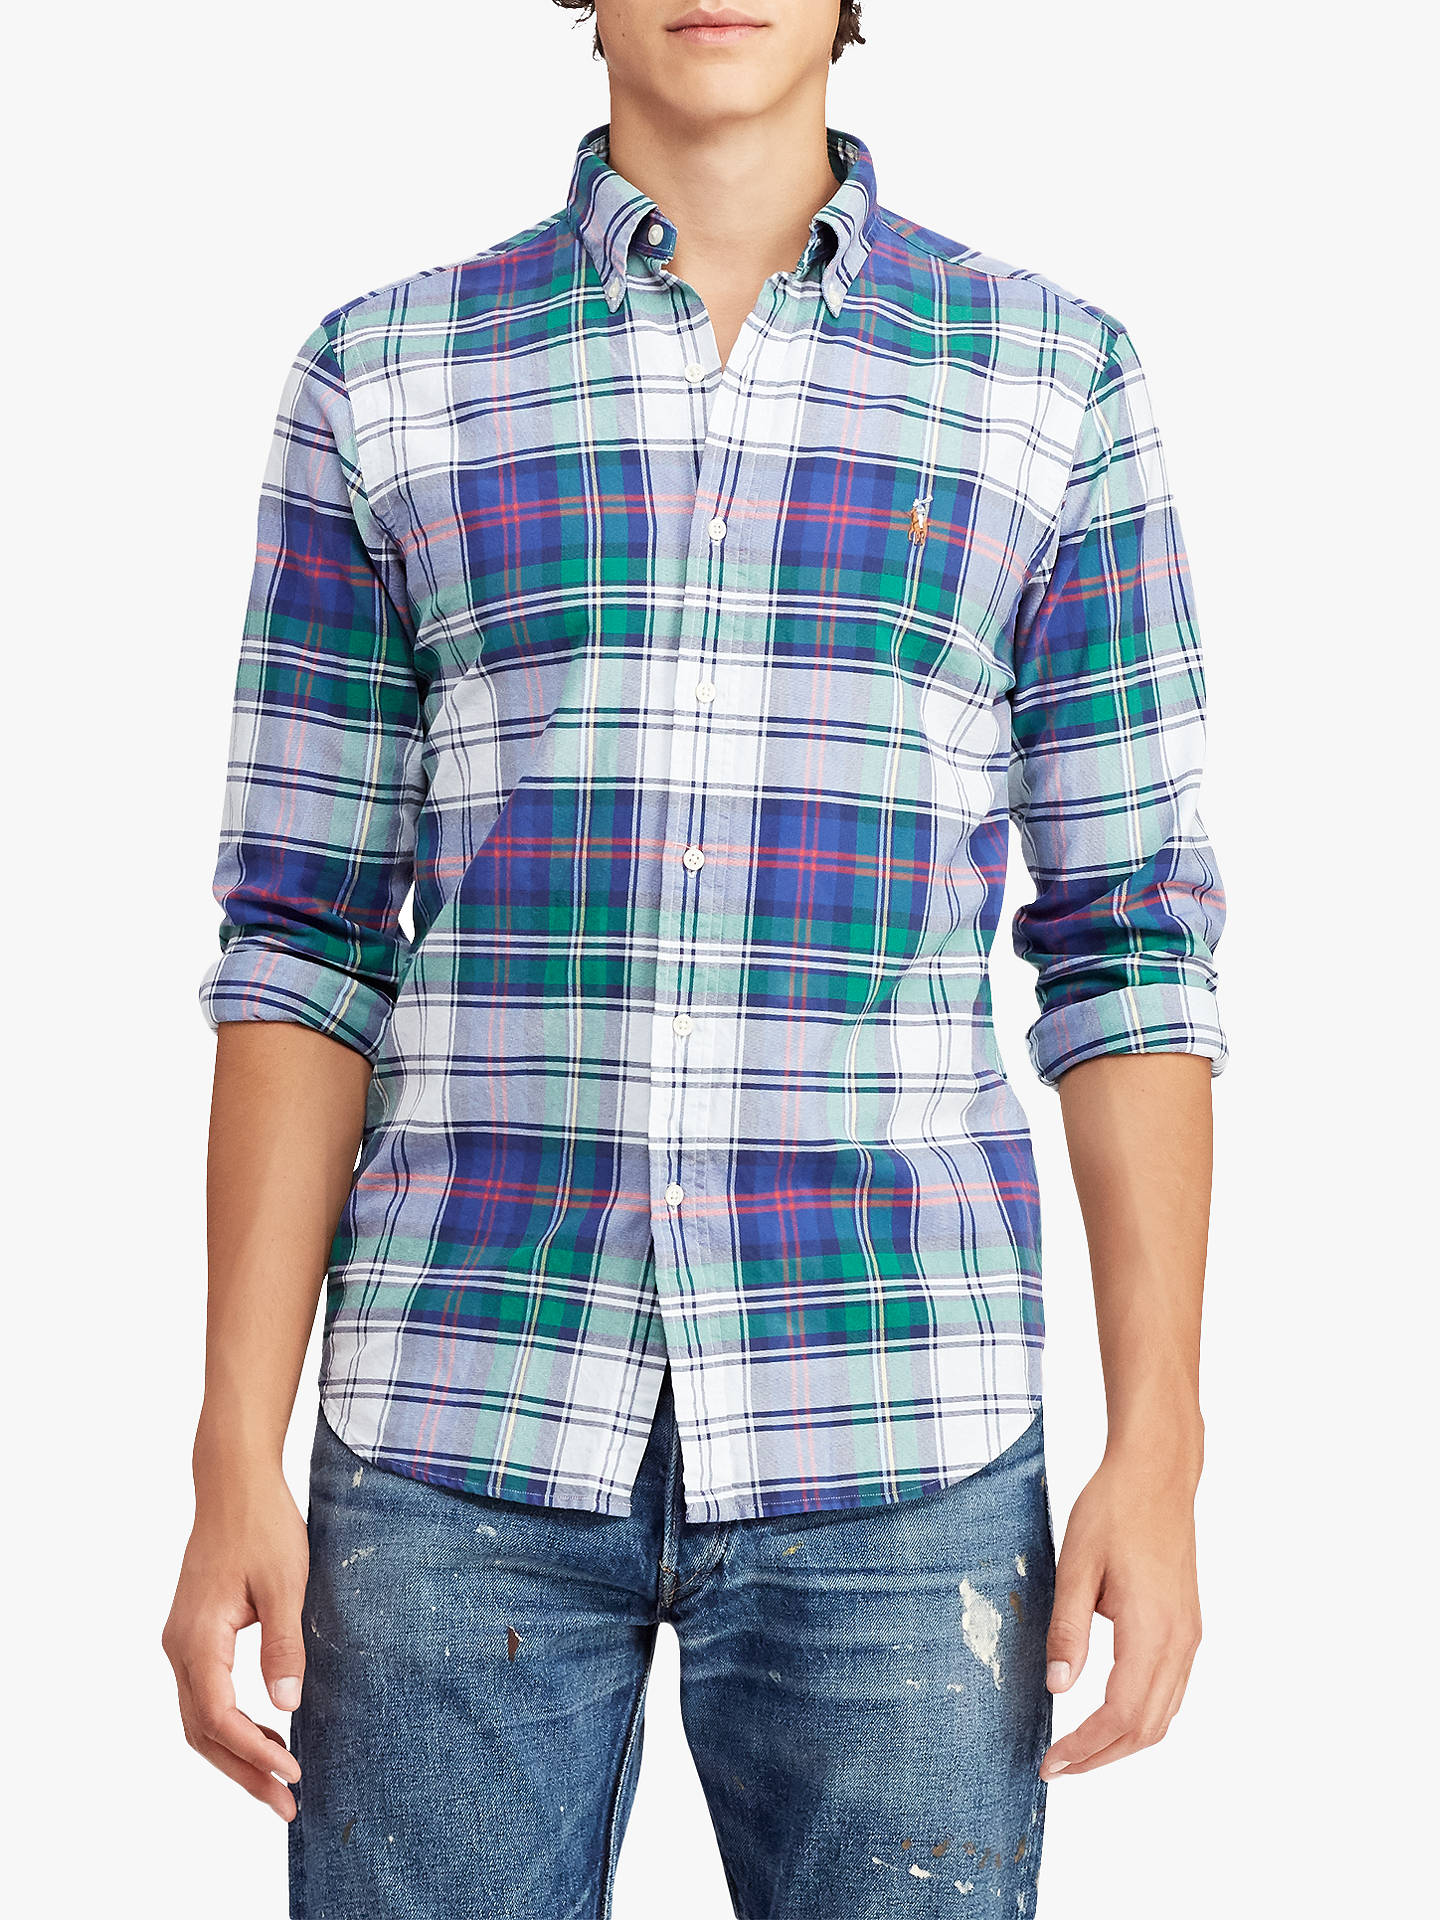 5a00f8de4d Buy Polo Ralph Lauren Classic Fit Plaid Oxford Shirt